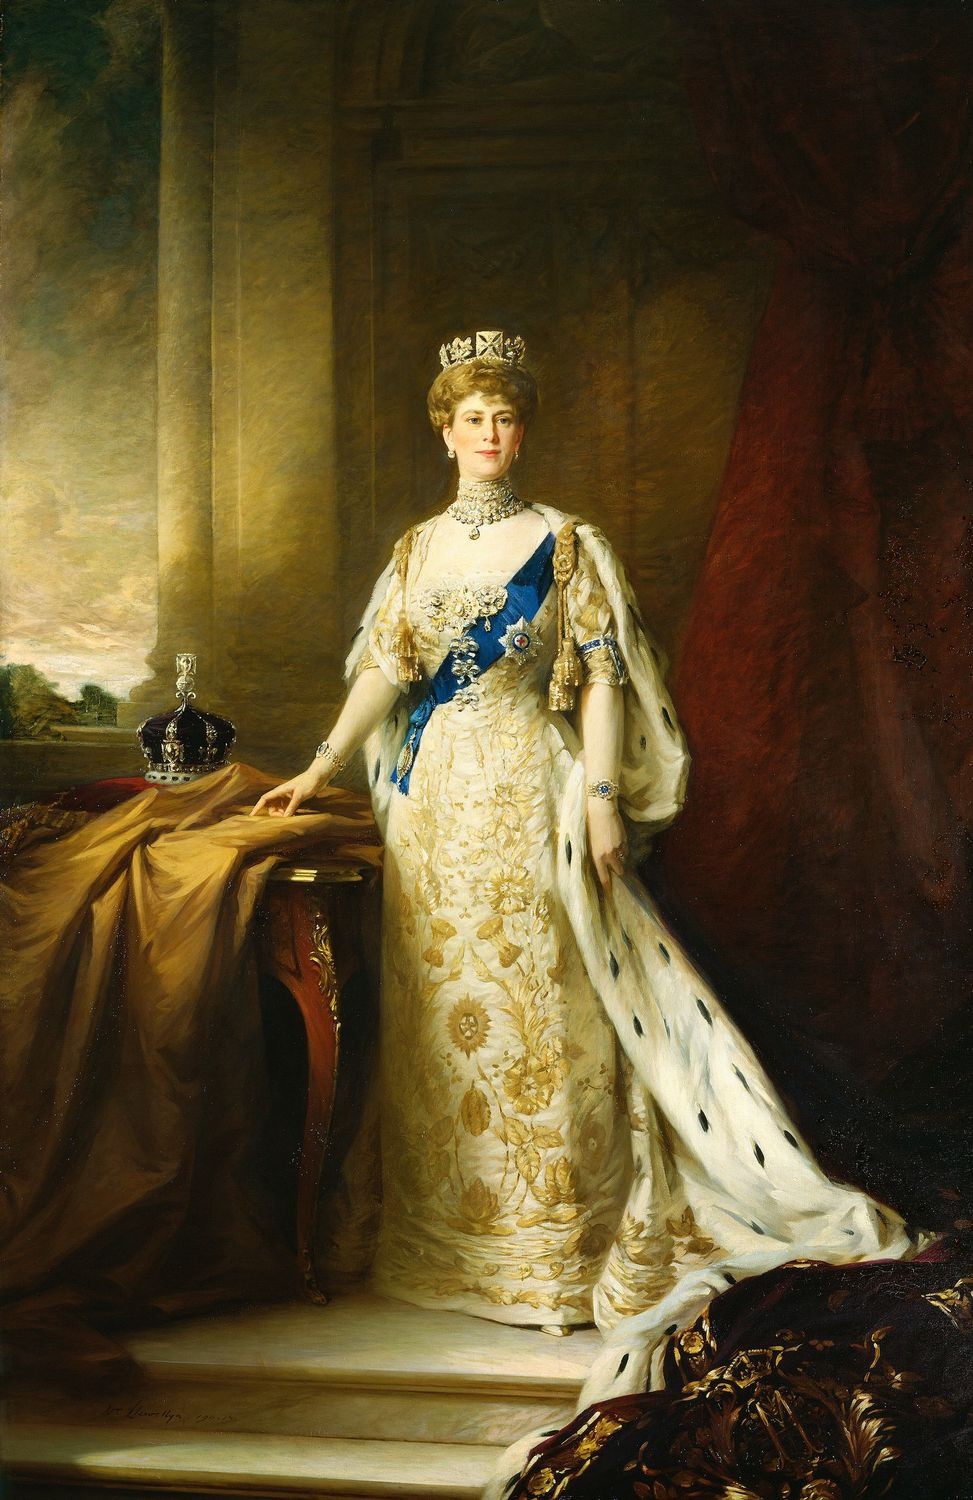 Queen Mary in coronation robes Portrait by William Llewellyn, c. 1911